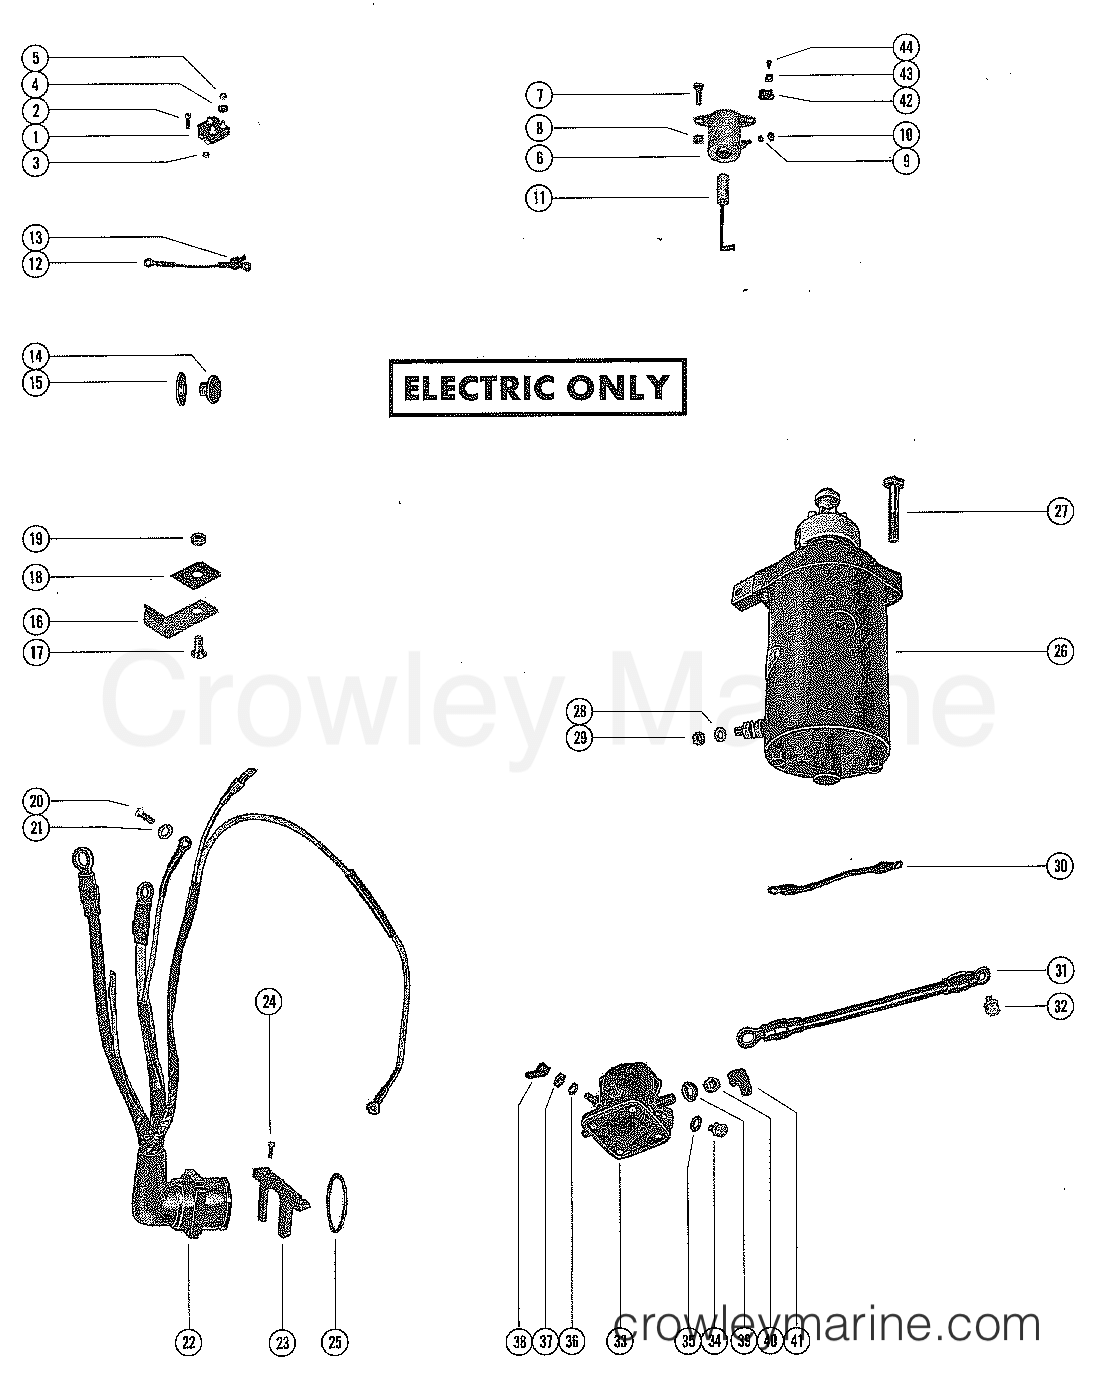 STARTER MOTOR, RECTIFIER AND WIRING HARNESS - Serial Range Mercury on mercury 50 hp wiring diagram, harley davidson wiring harness, saturn wiring harness, mercury marine ignition wiring, arctic cat wiring harness, mercury optimax wiring harness, volvo penta wiring harness, suzuki wiring harness, kenwood wiring harness, yamaha wiring harness, husqvarna wiring harness, outboard motor wiring harness, caterpillar wiring harness, mercury marine ignition harness, delphi wiring harness, mercury 40 hp wiring diagram, west marine wiring harness, detroit diesel wiring harness, ididit wiring harness, mercruiser wiring harness,